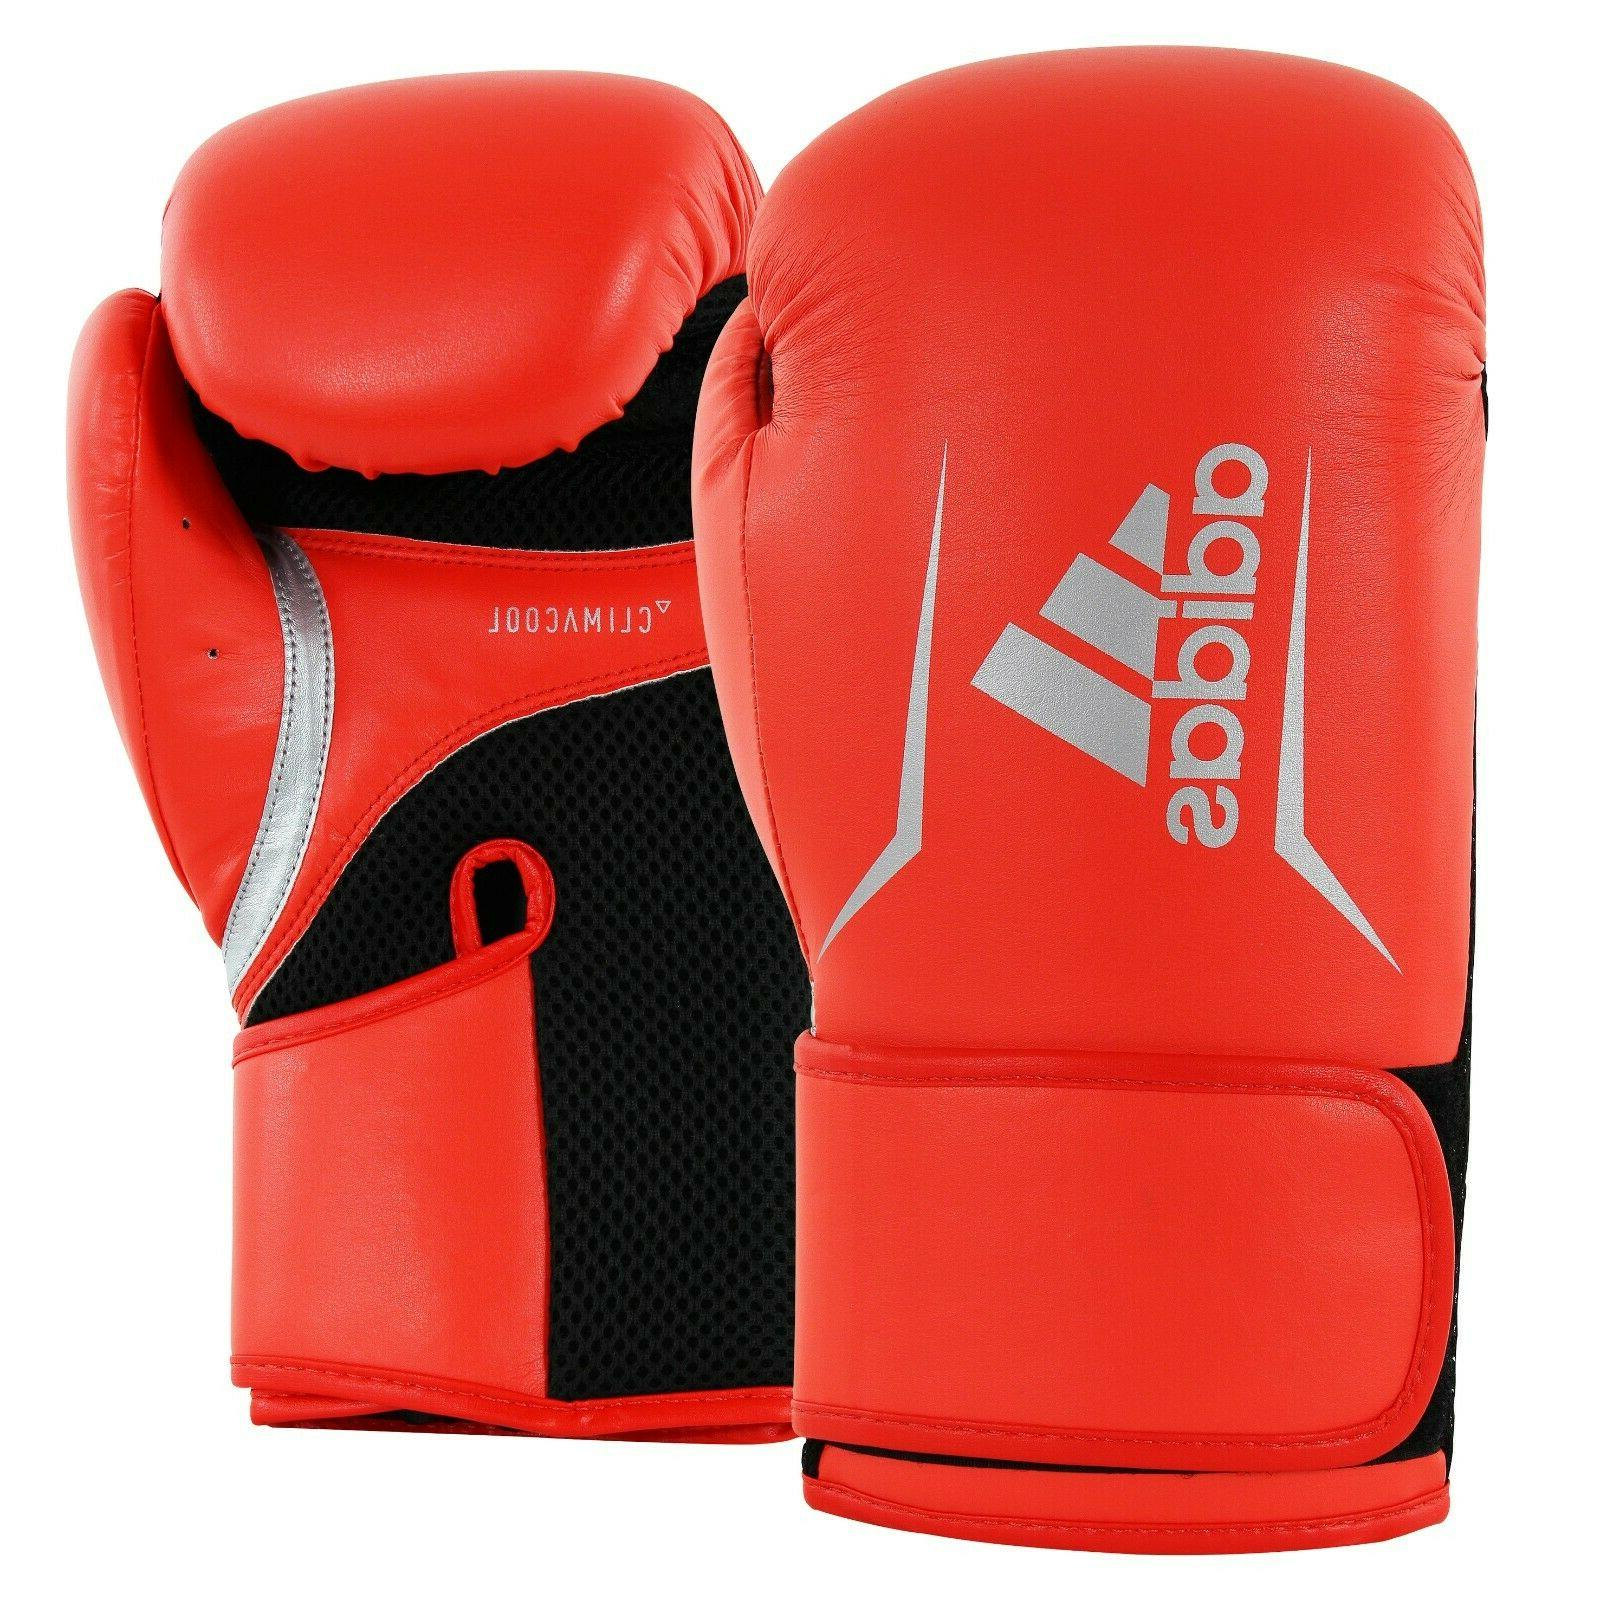 adidas Kickboxing Gloves for &